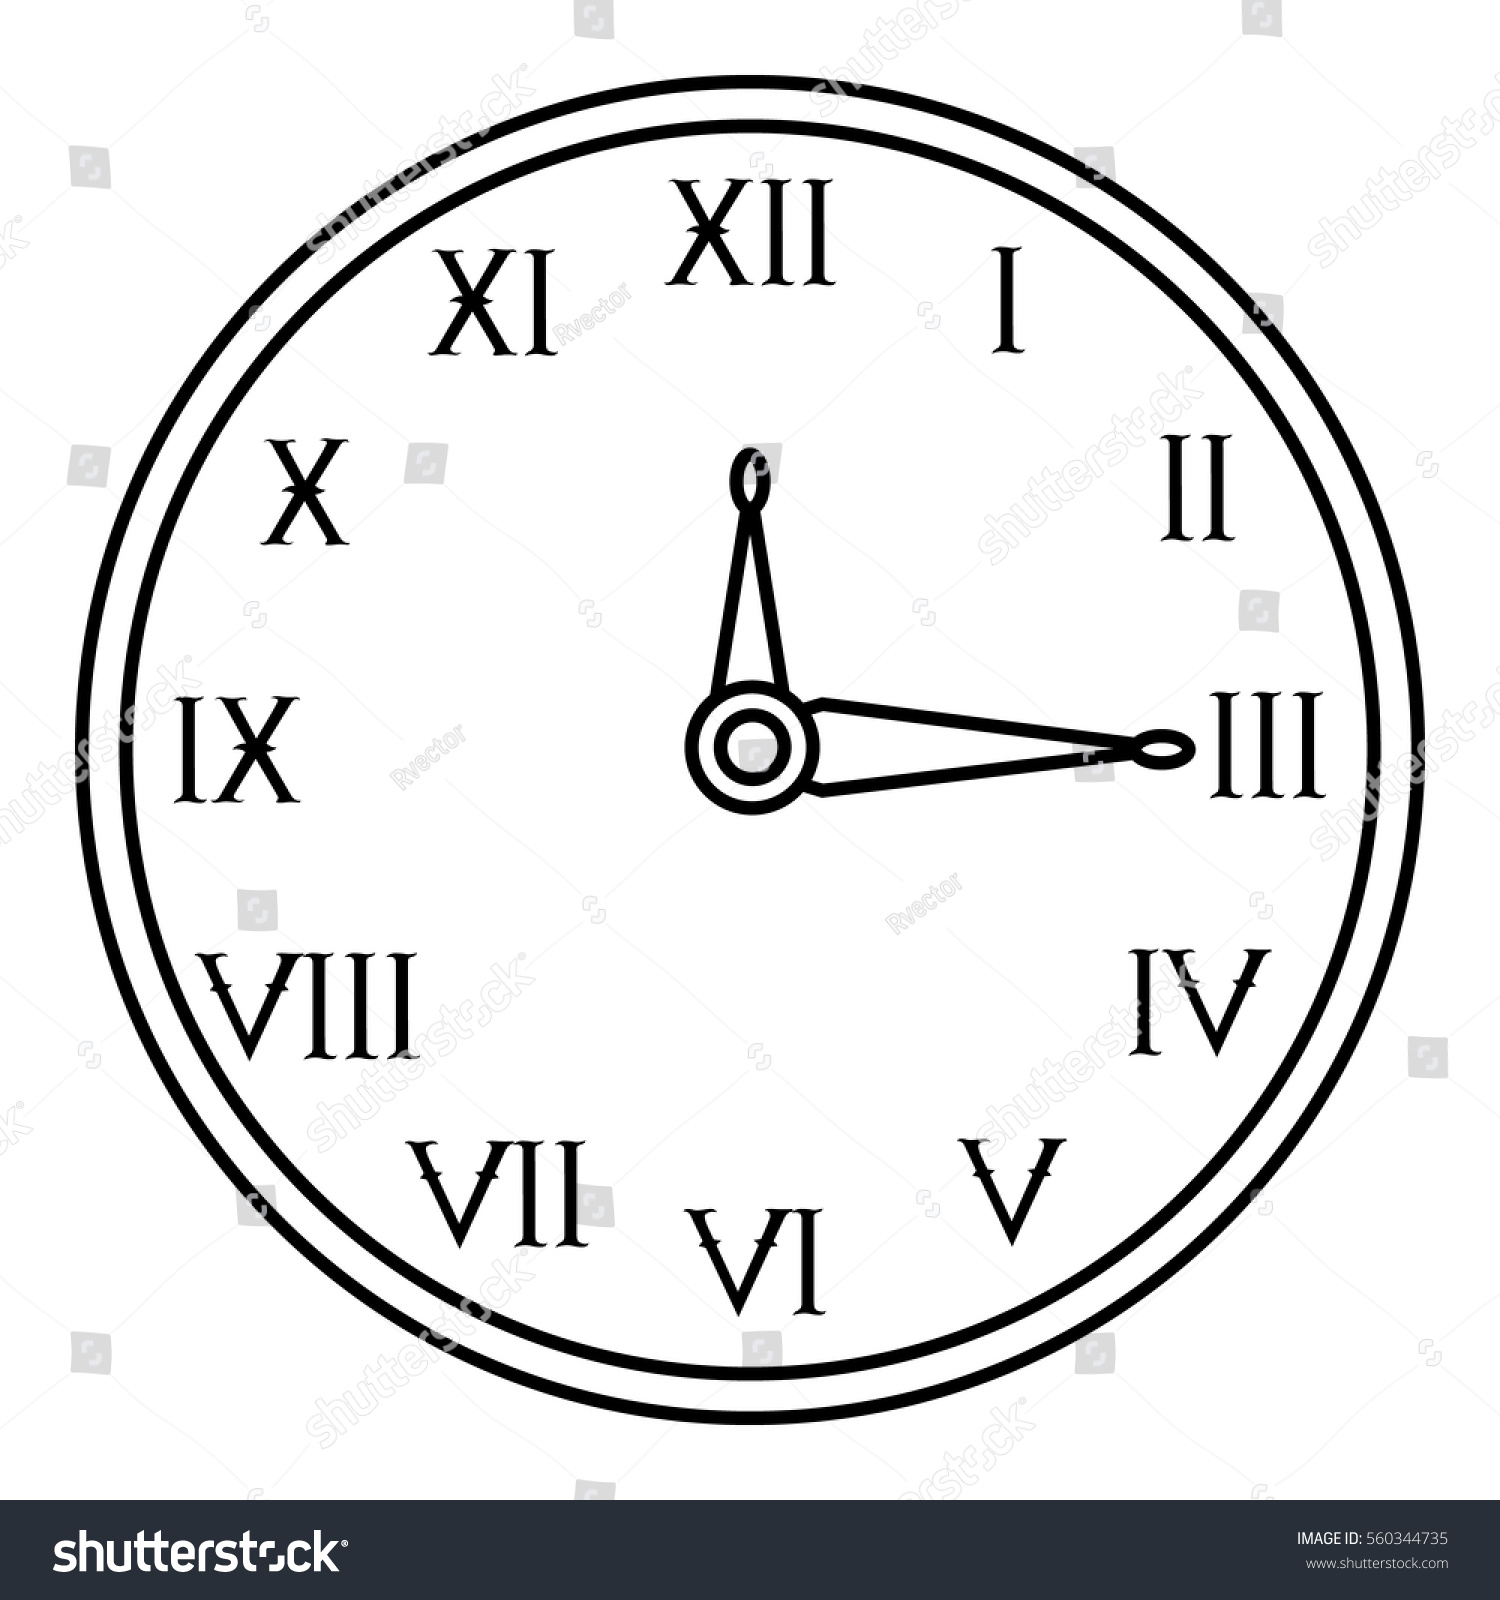 Wall clock icon outline illustration wall stock vector 560344735 wall clock icon outline illustration of wall clock vector icon for web amipublicfo Image collections